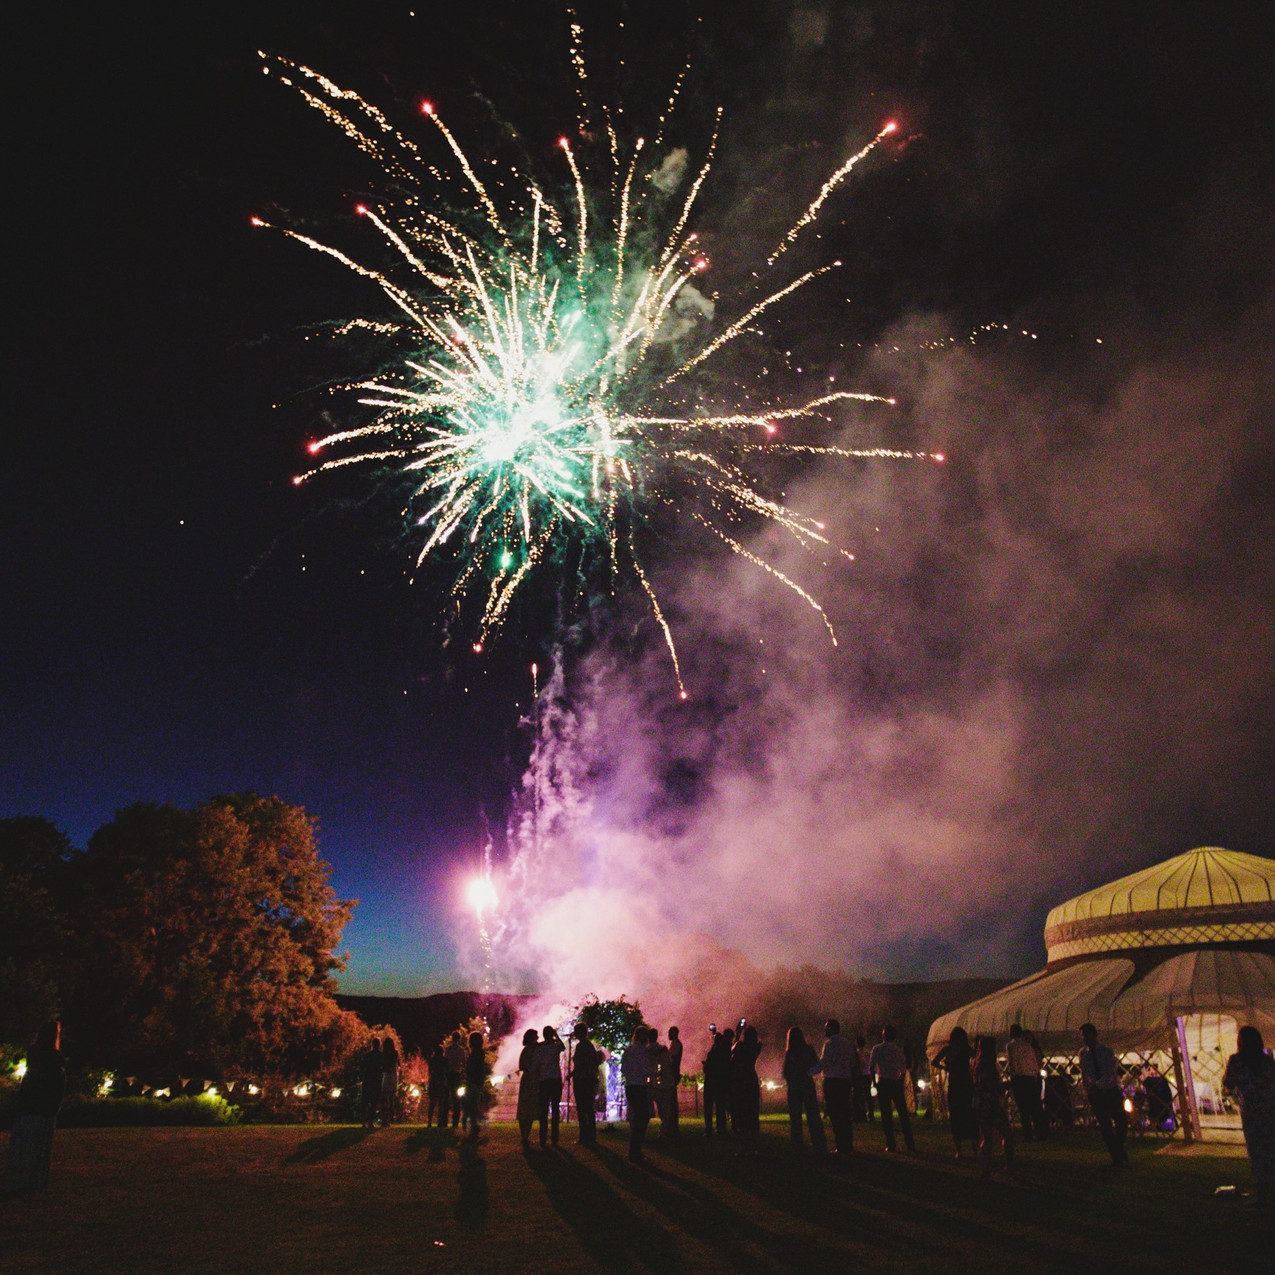 Yurt evening corporate event and fireworks